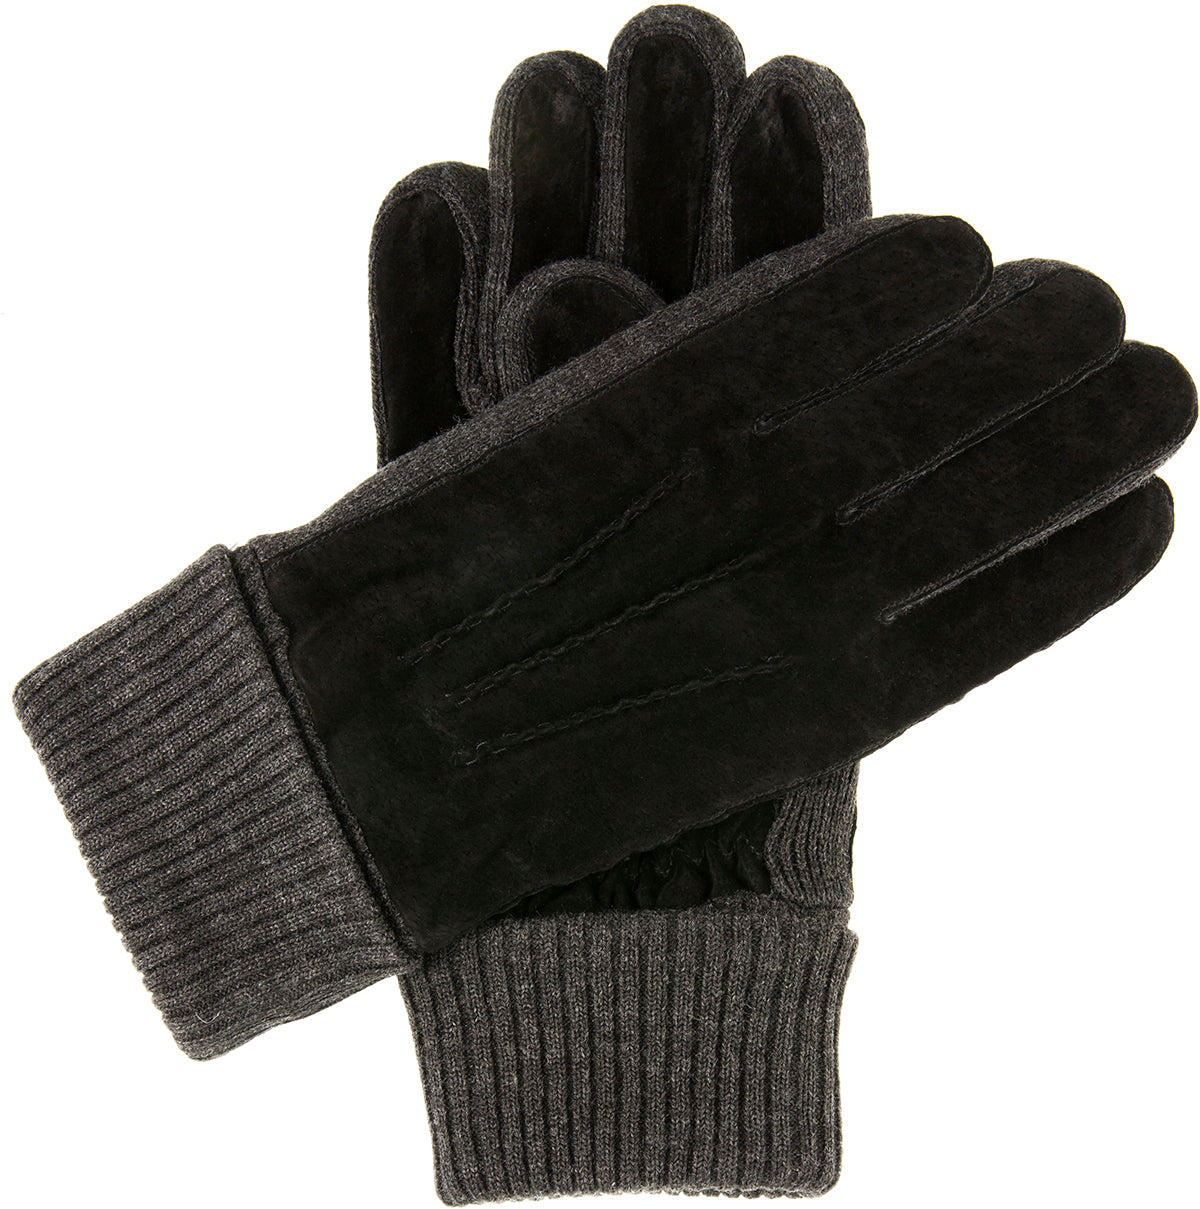 Dents - Kendal - Black/Charcoal - Apparelly Gloves